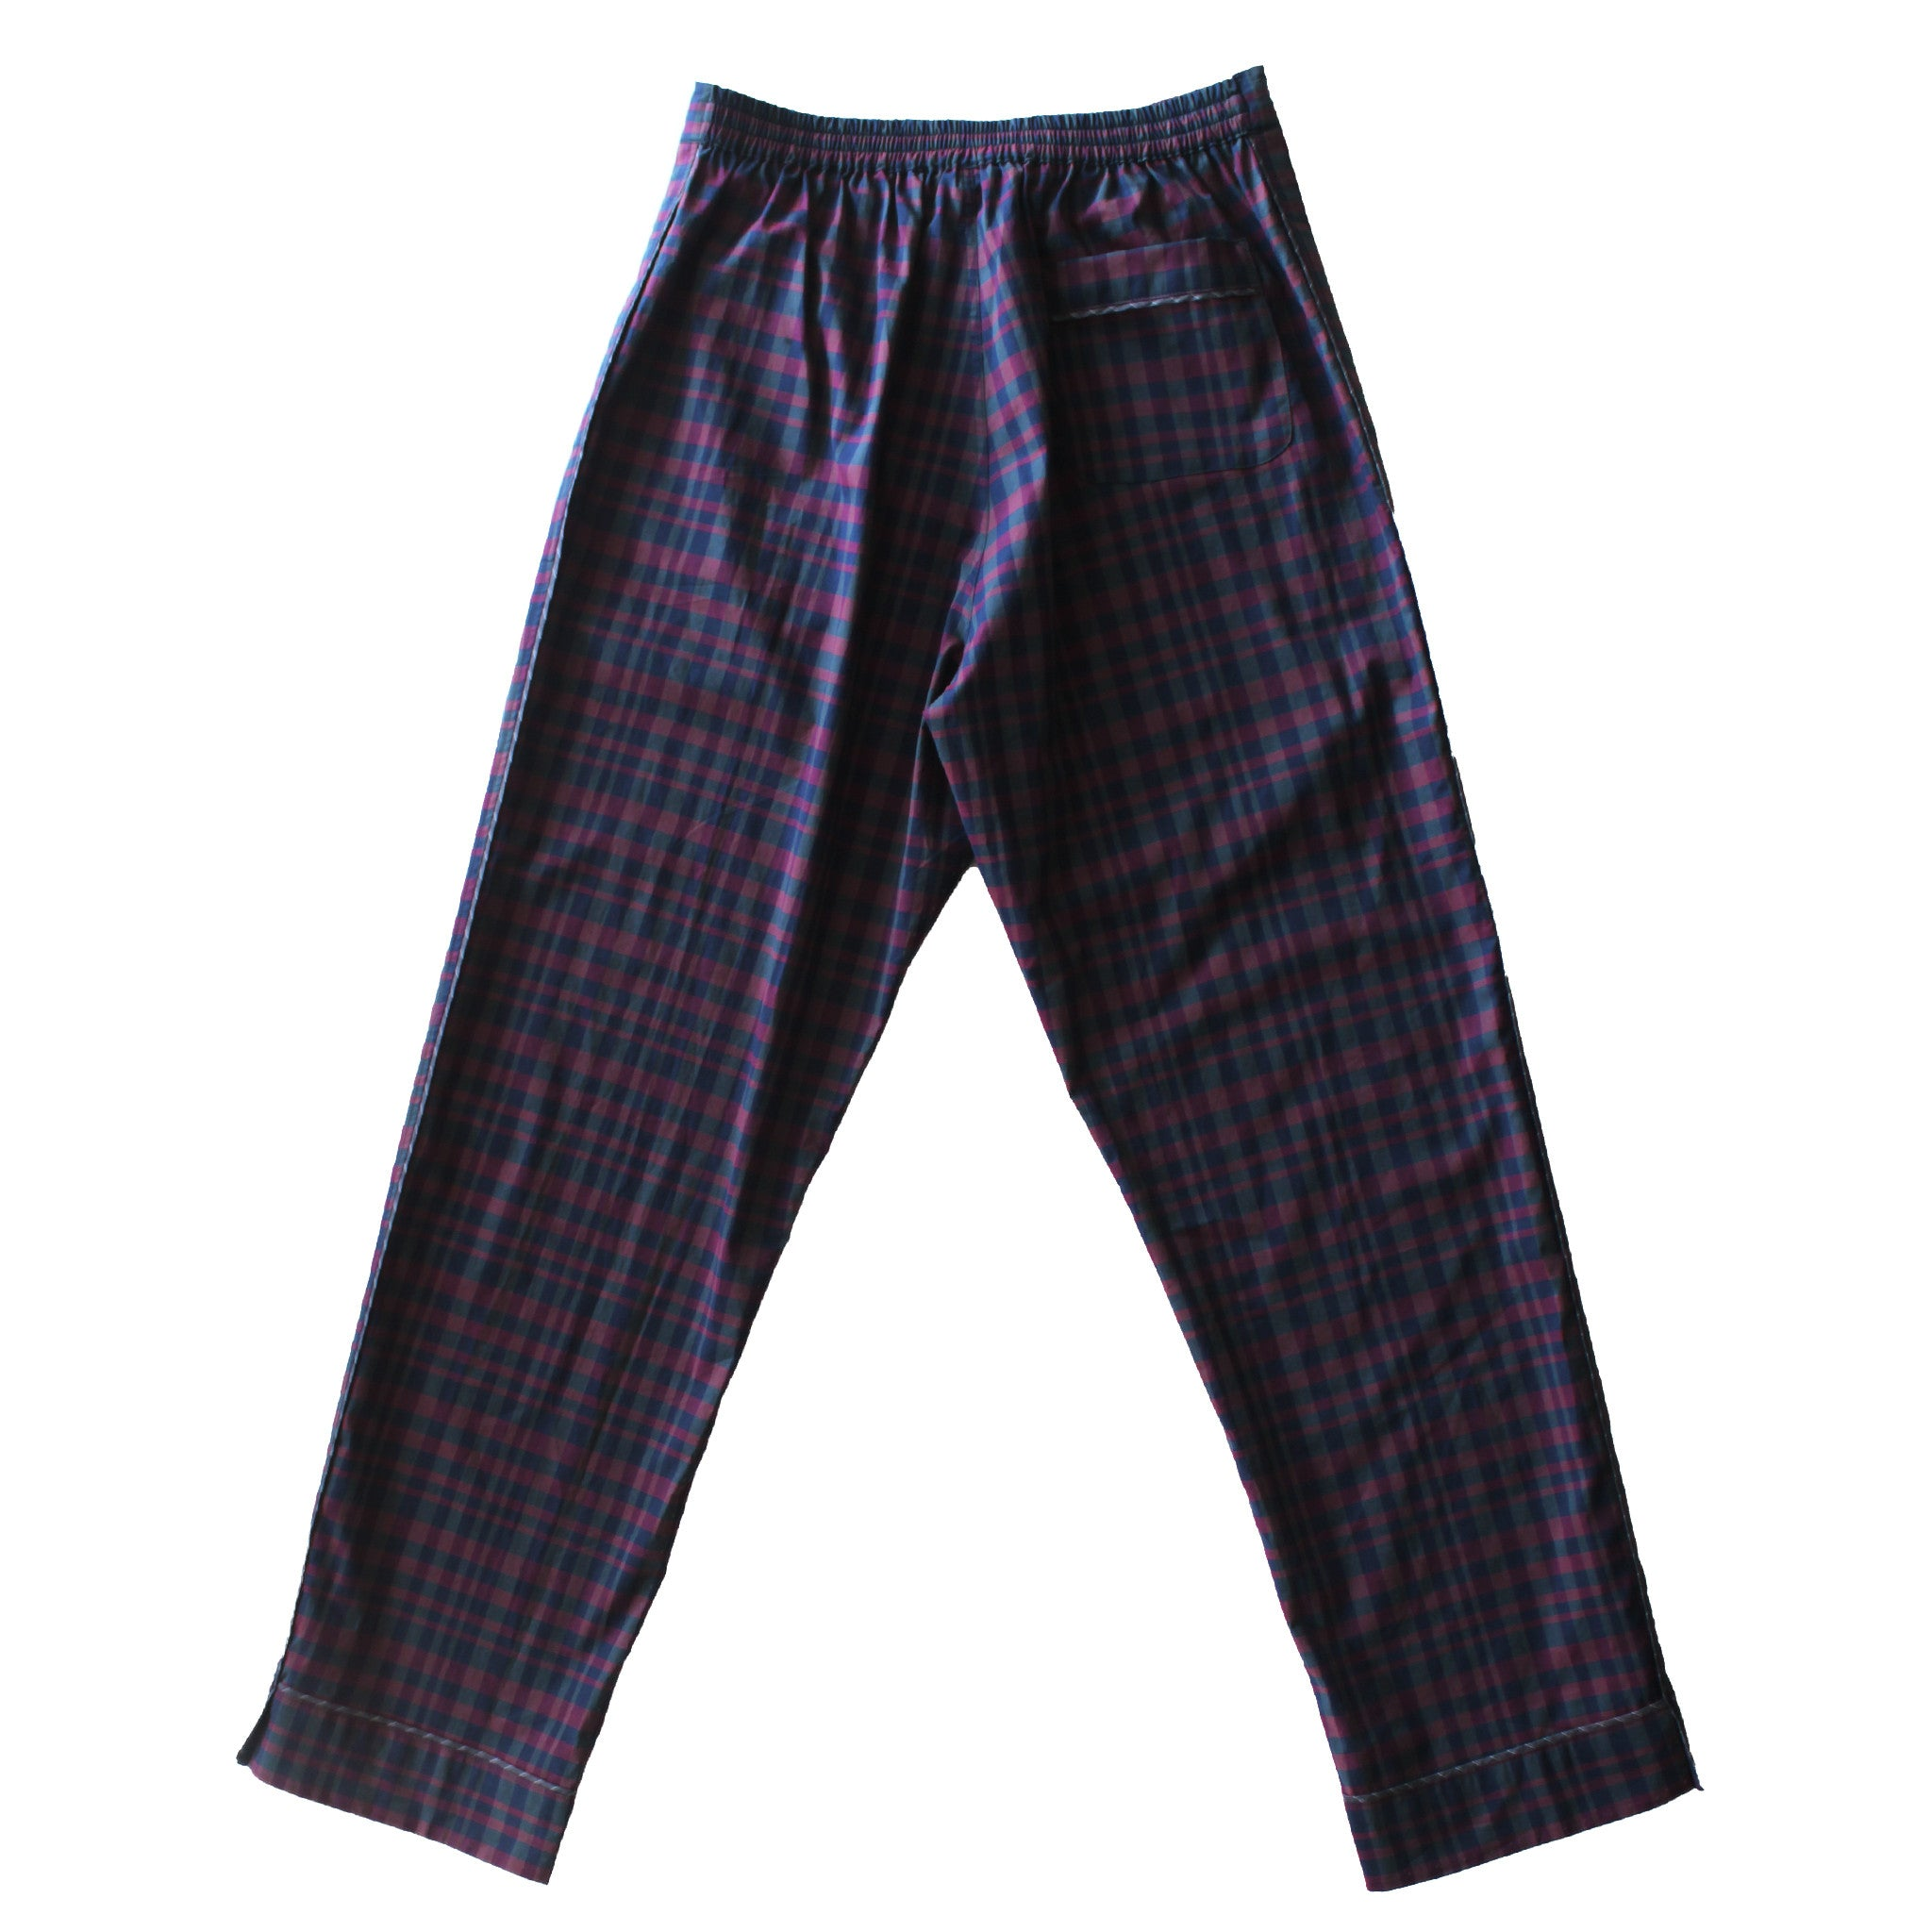 Saturn Pajama Pant in Burgundy and Blue Check Italian Cotton